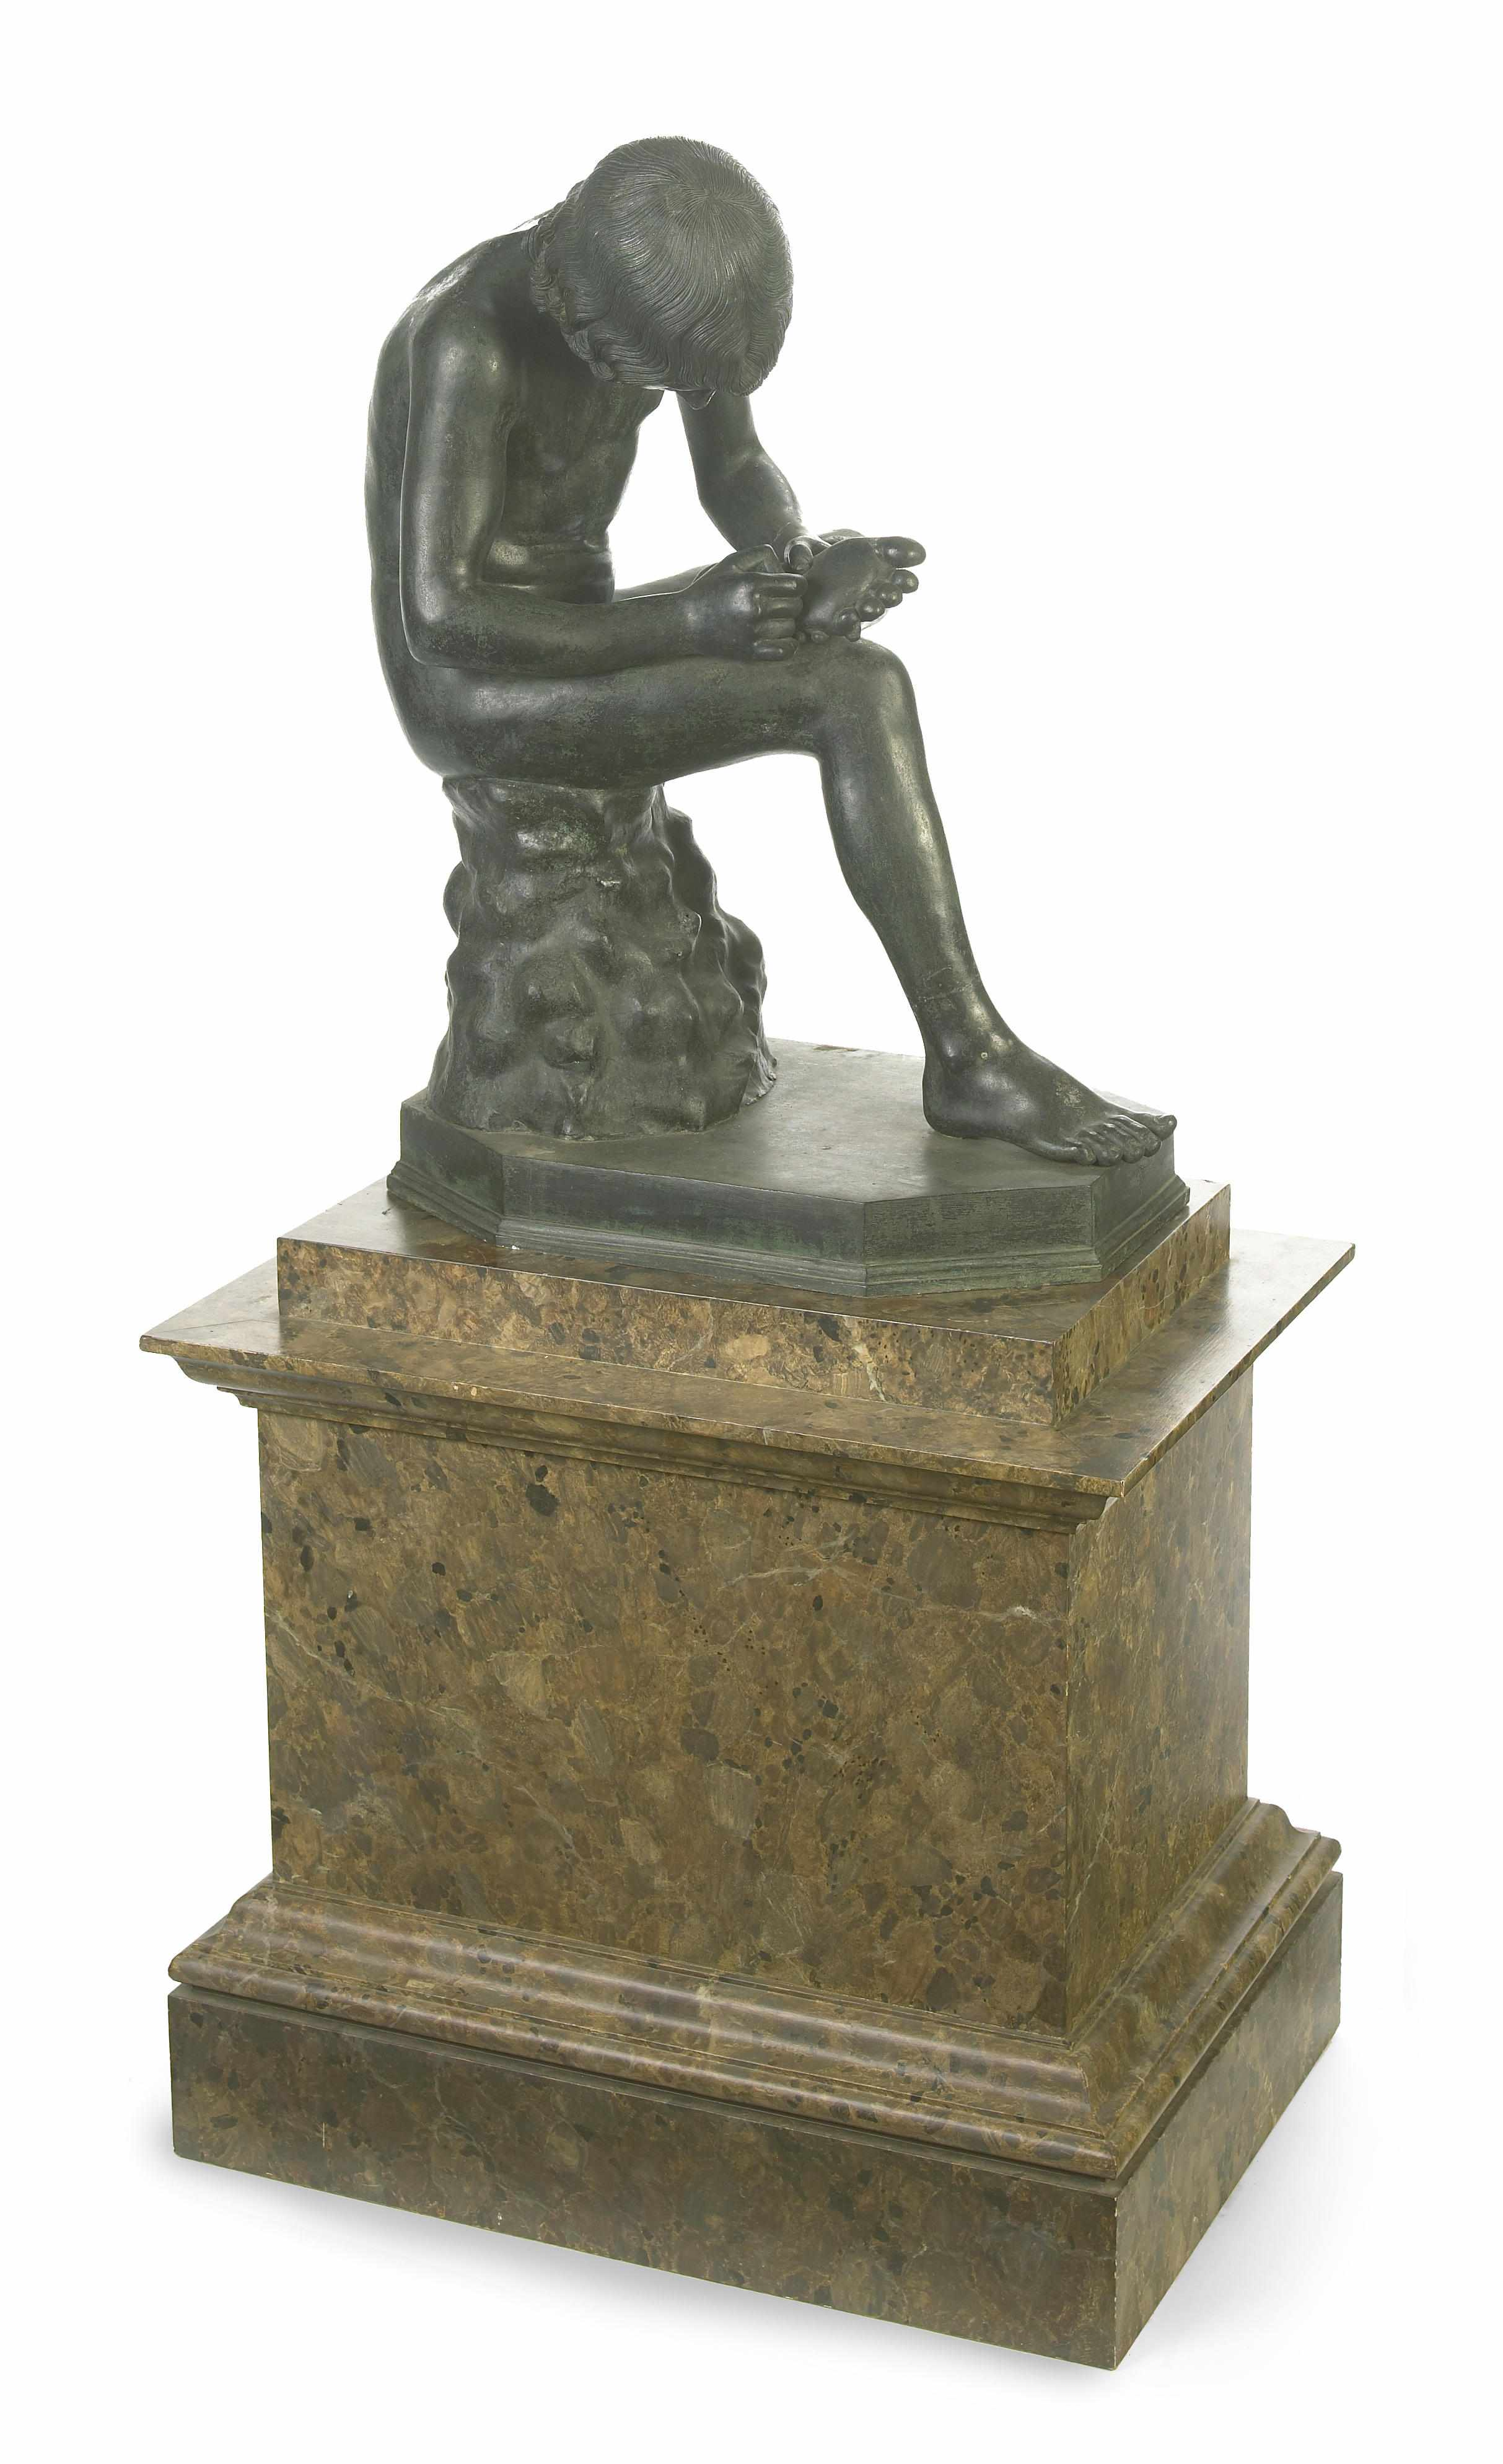 A large Italian patinated bronze figure of